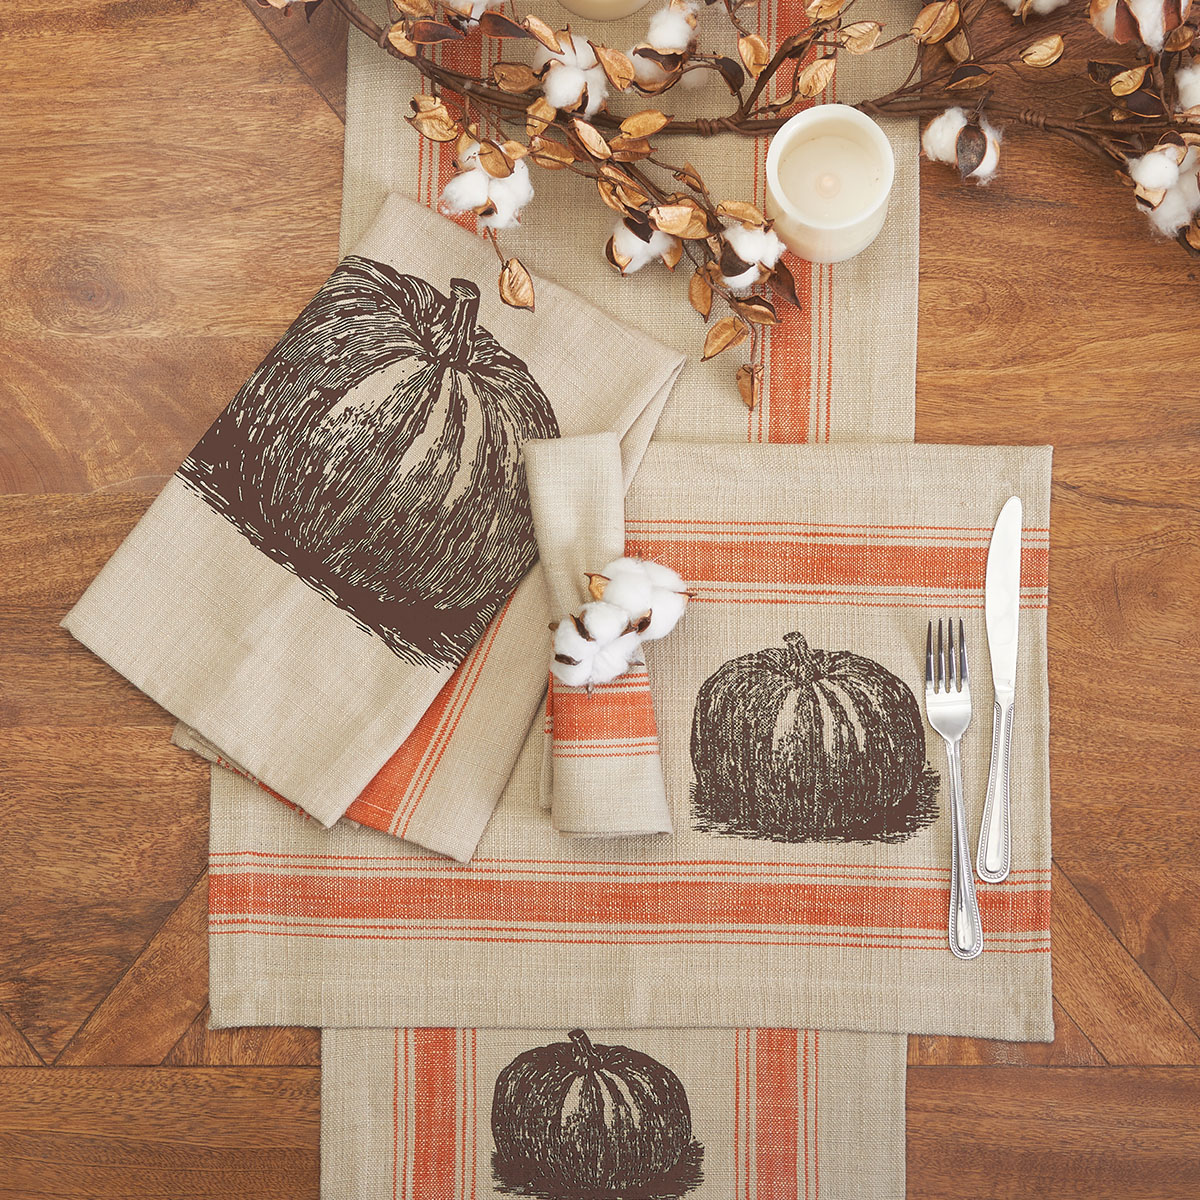 C&F Home_Seasonal_Tabletop_Placemats.jpg